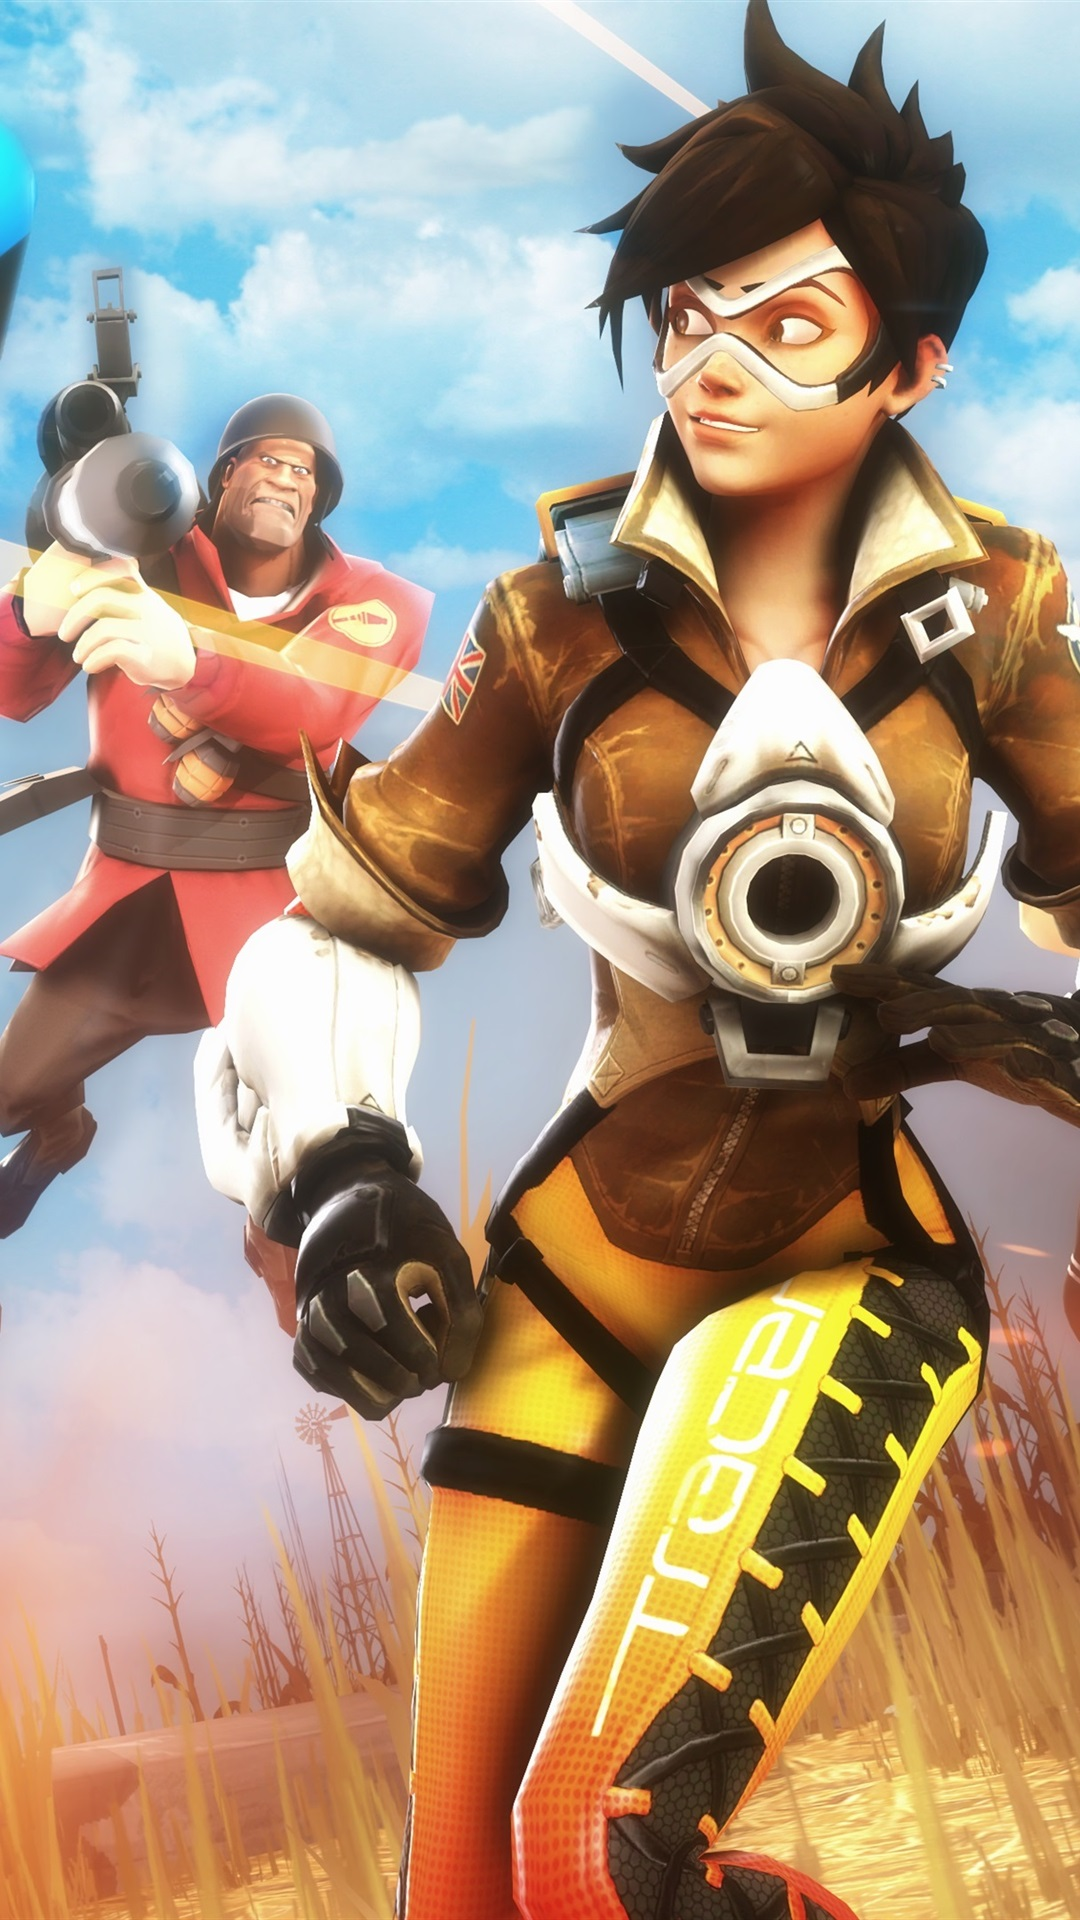 Team Fortress 2 Iphone Wallpaper - Download Wallpapers